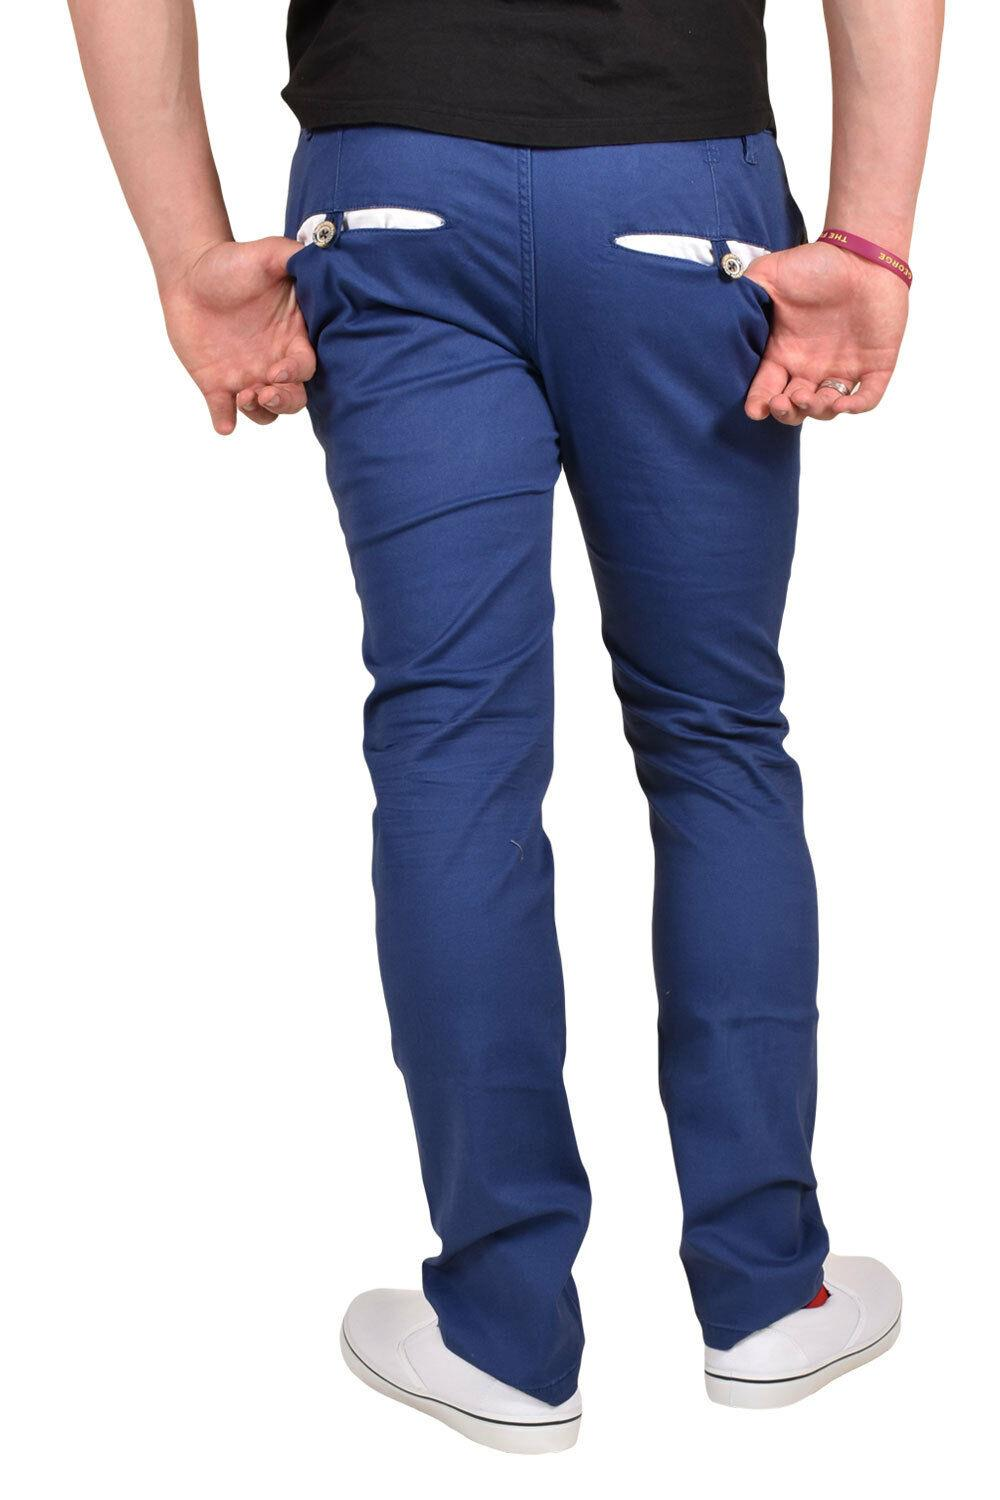 New-Mens-Designer-Jacksouth-Chino-Regular-Fit-Stretch-Cotton-Rich-Twill-Trousers thumbnail 5